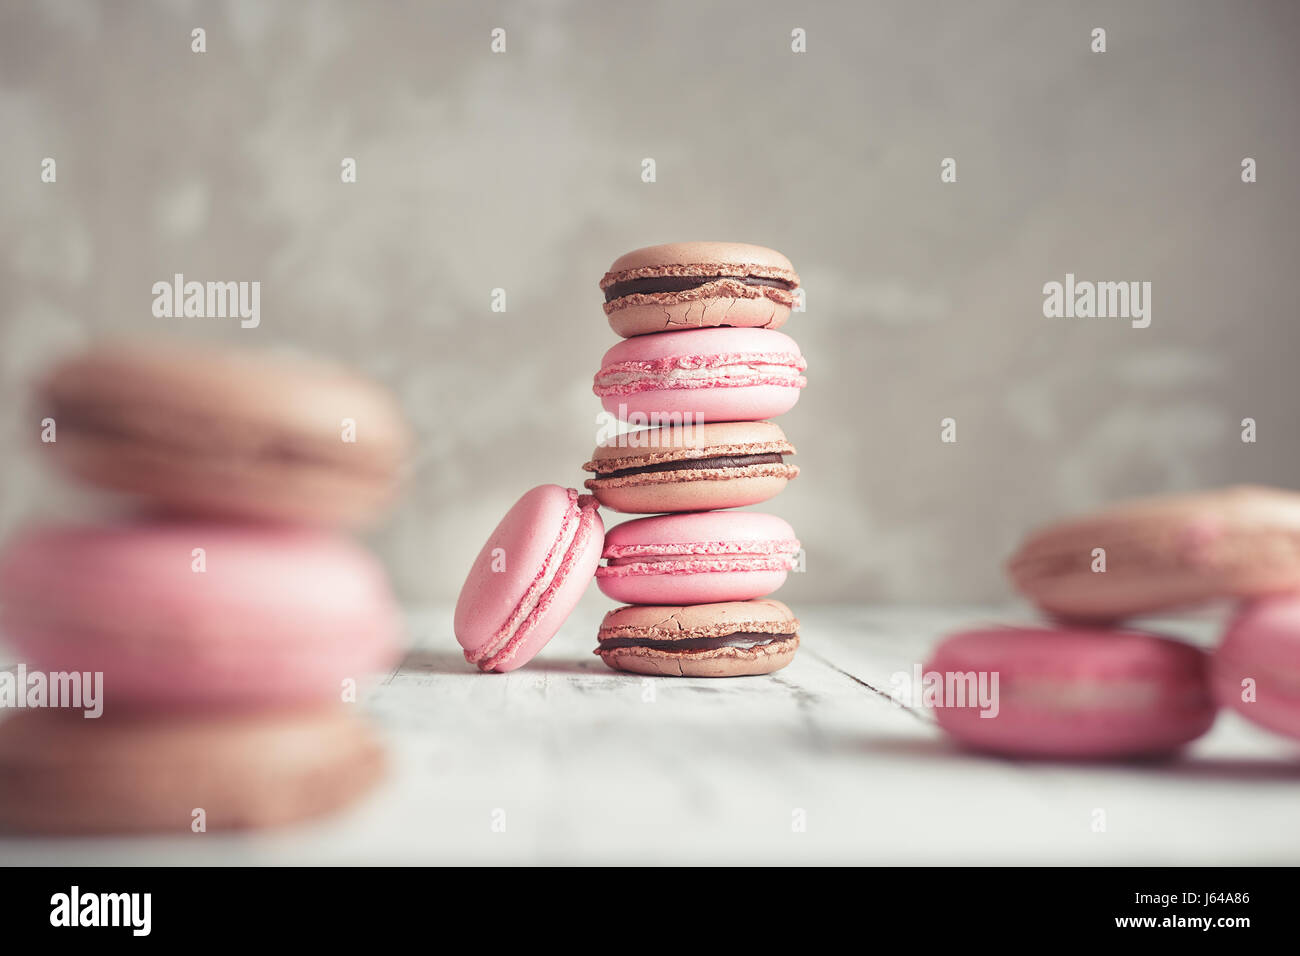 Raspberry and Chocolate pastel colored Macarons or Macaroons over concrete stone background - Stock Image